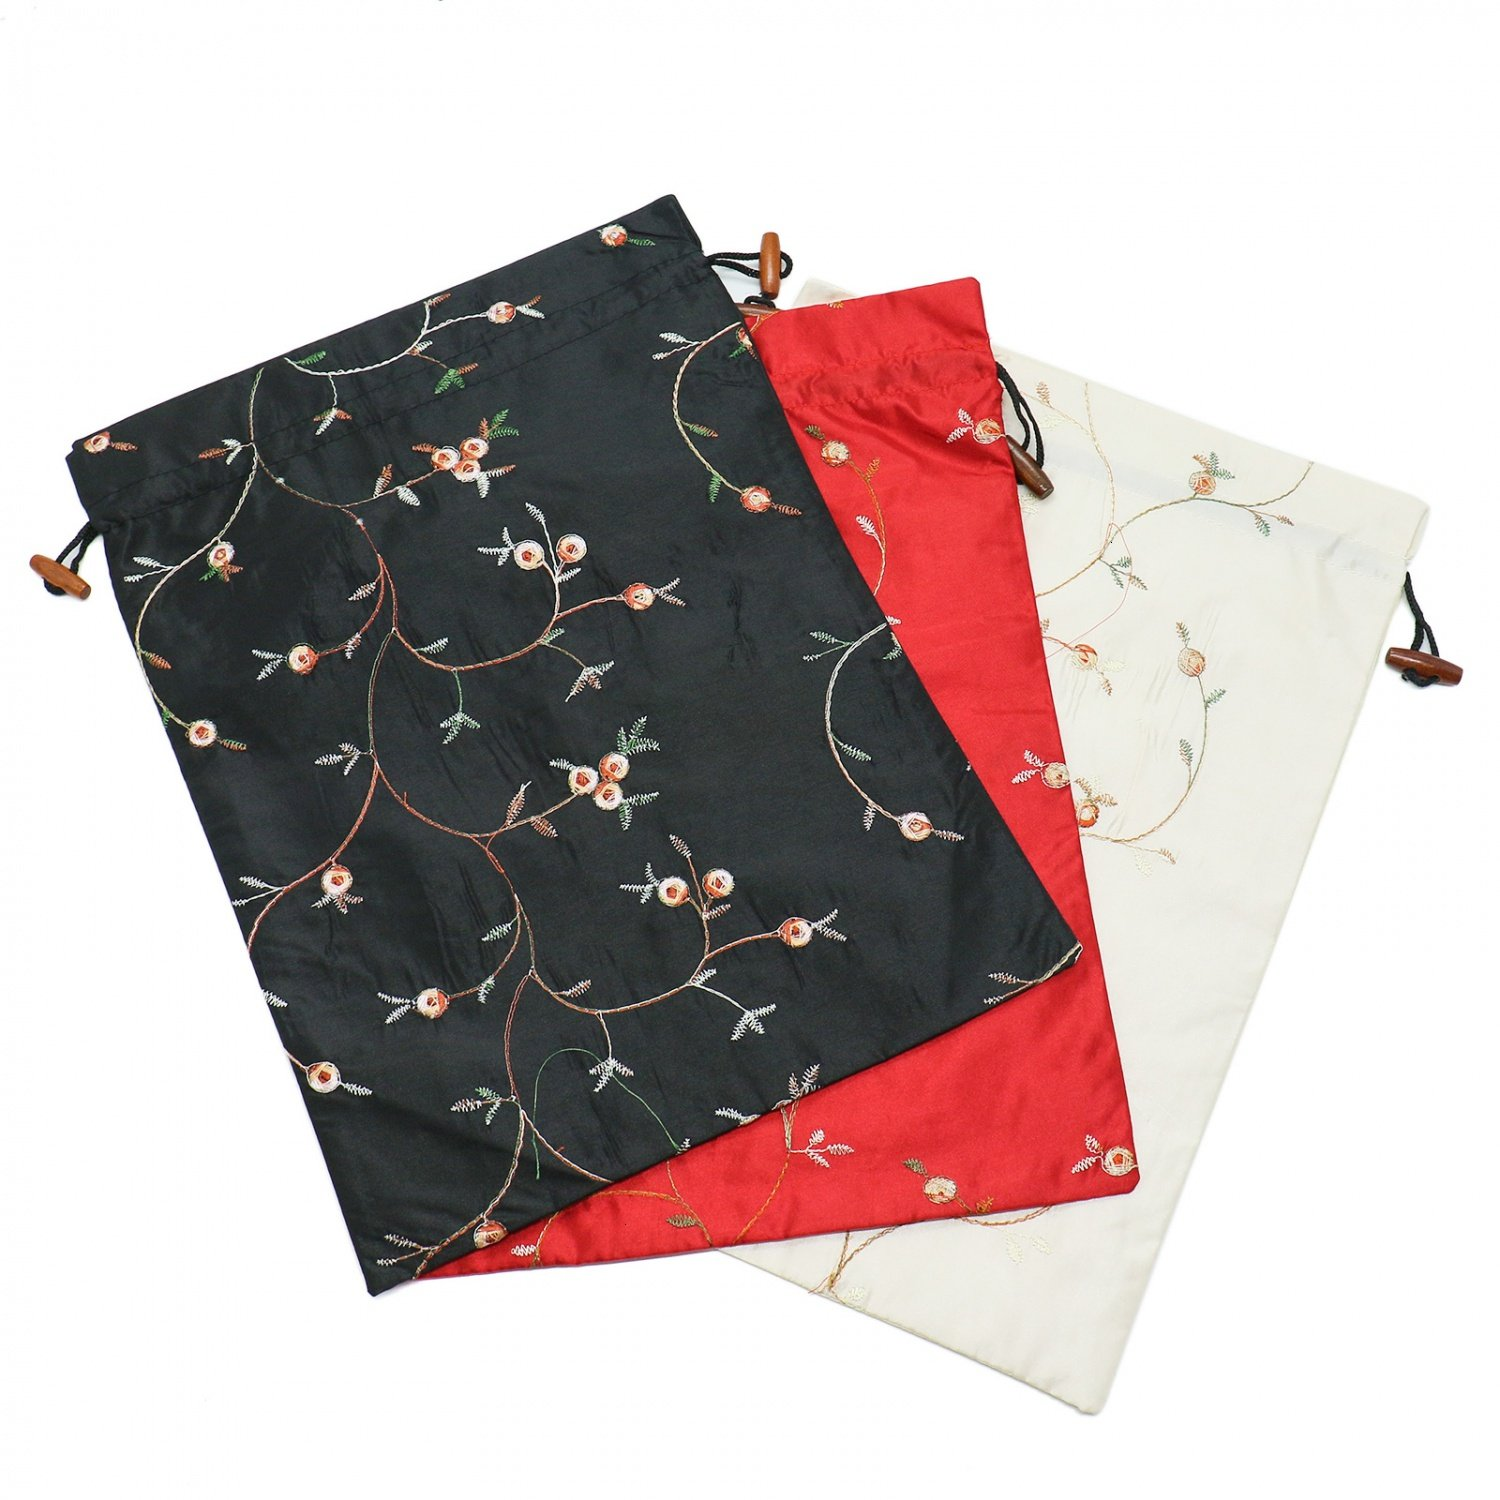 Buorsa Flower Design Embroidered Silk Jacquard Travel Bag Underwear Cloth Shoe Bags Pouch Purse , Set of 3--- 14'' x 11''(L x W) by Buorsa (Image #1)